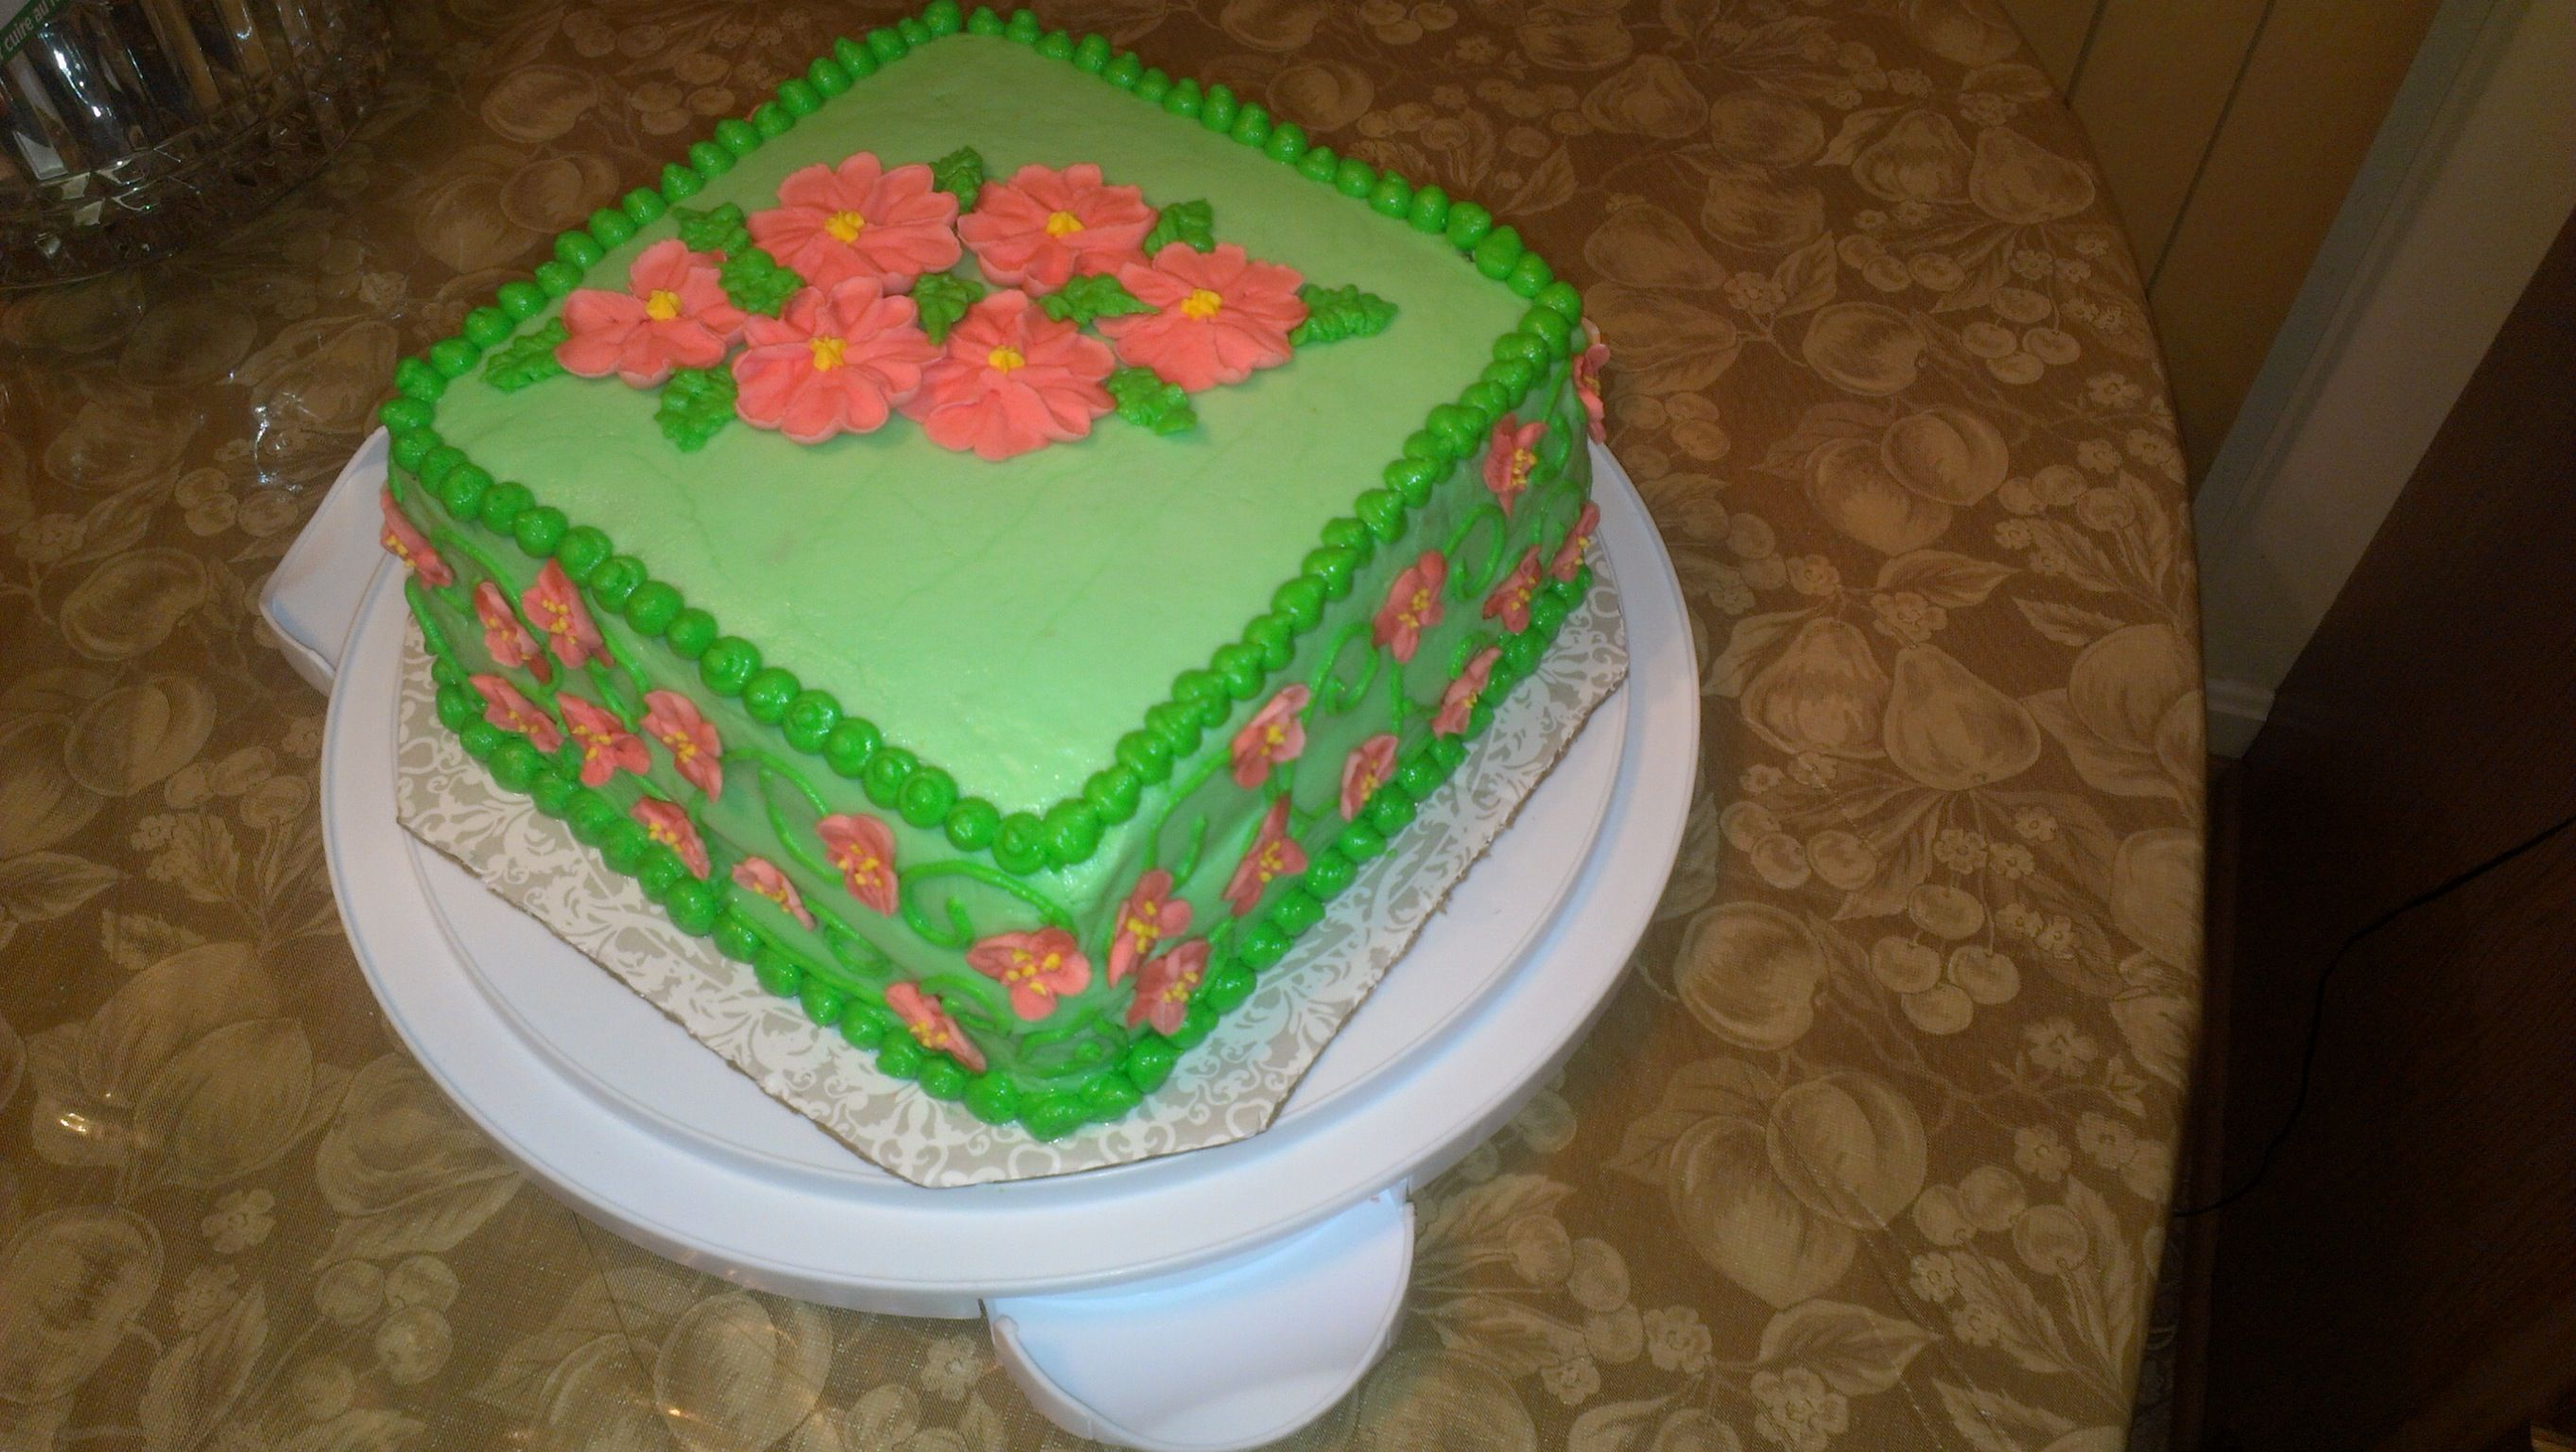 Michaels Cake Decorating Class Sign Up Captivating Wiltoncontest Michael's Bowie Md  My Wilton Method Class Cakes 2018